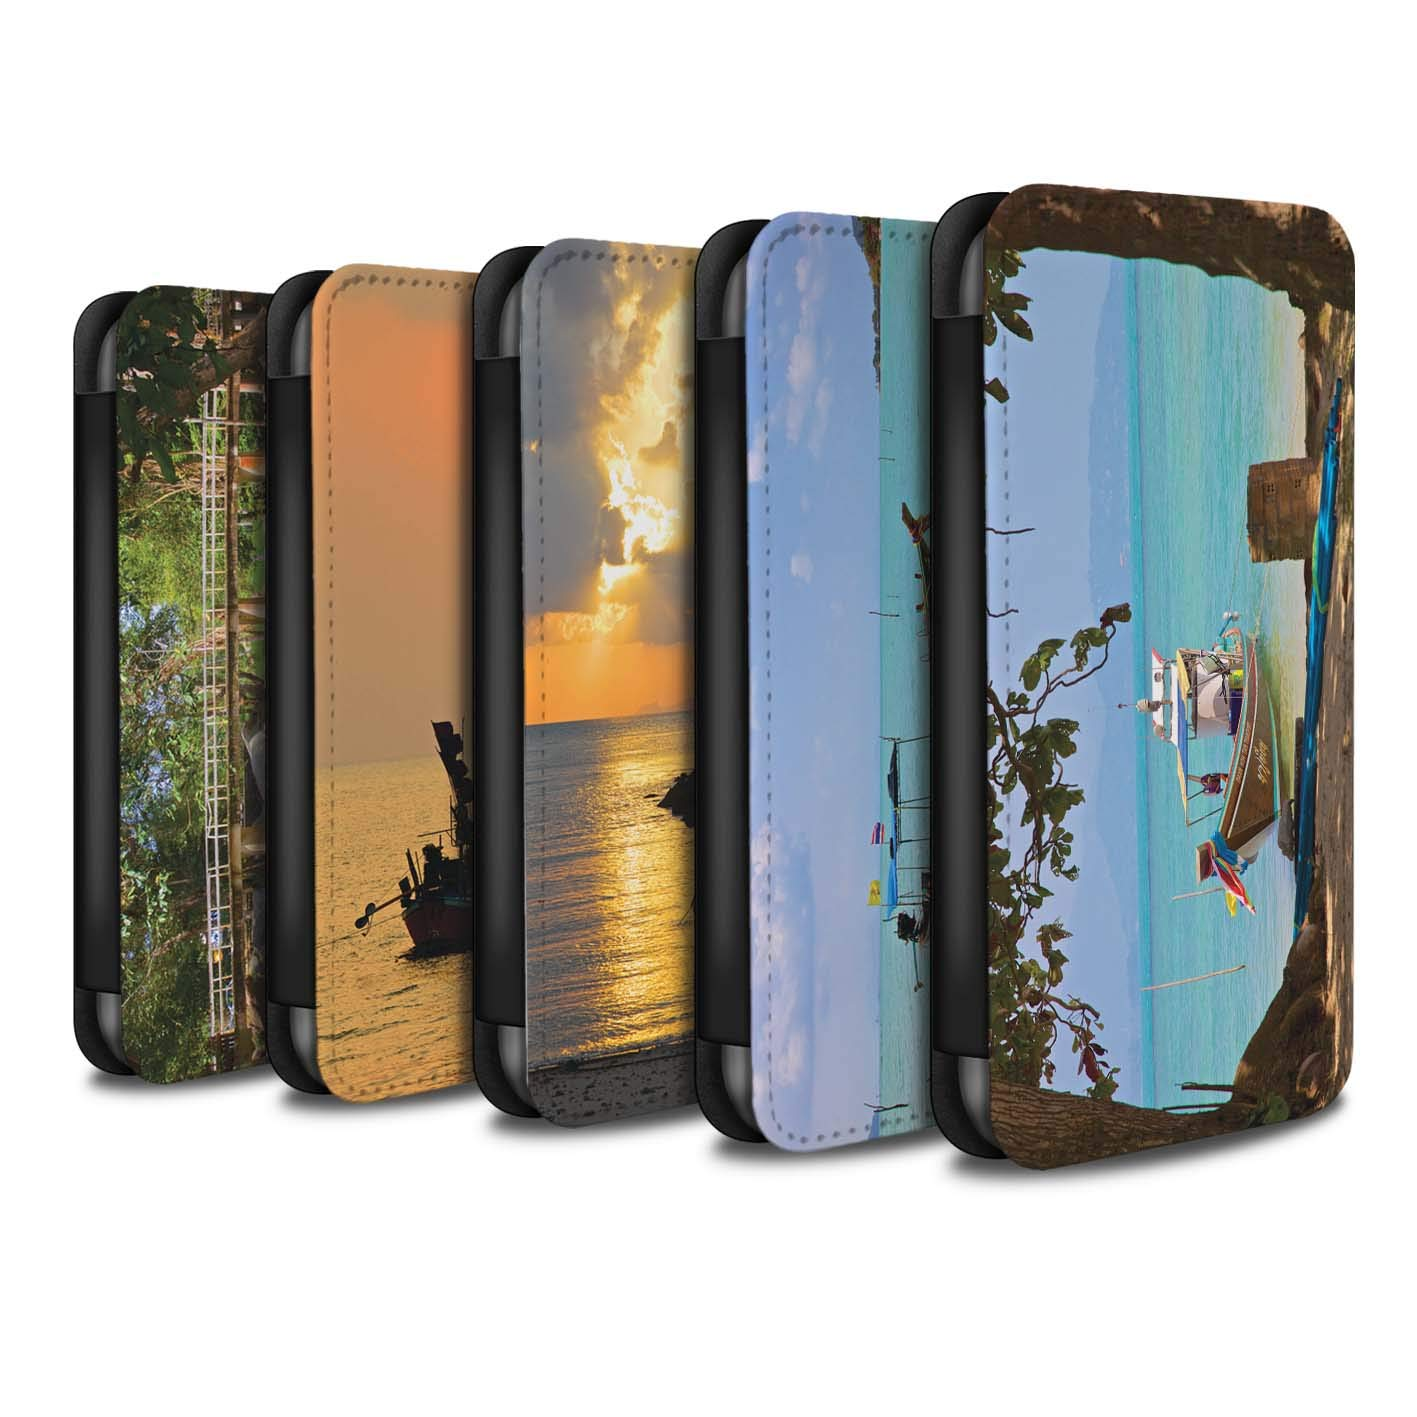 eSwish PU Leather Wallet Flip Case/Cover for Huawei P Smart/Pack 15pcs Design/Thailand Scenery Collection